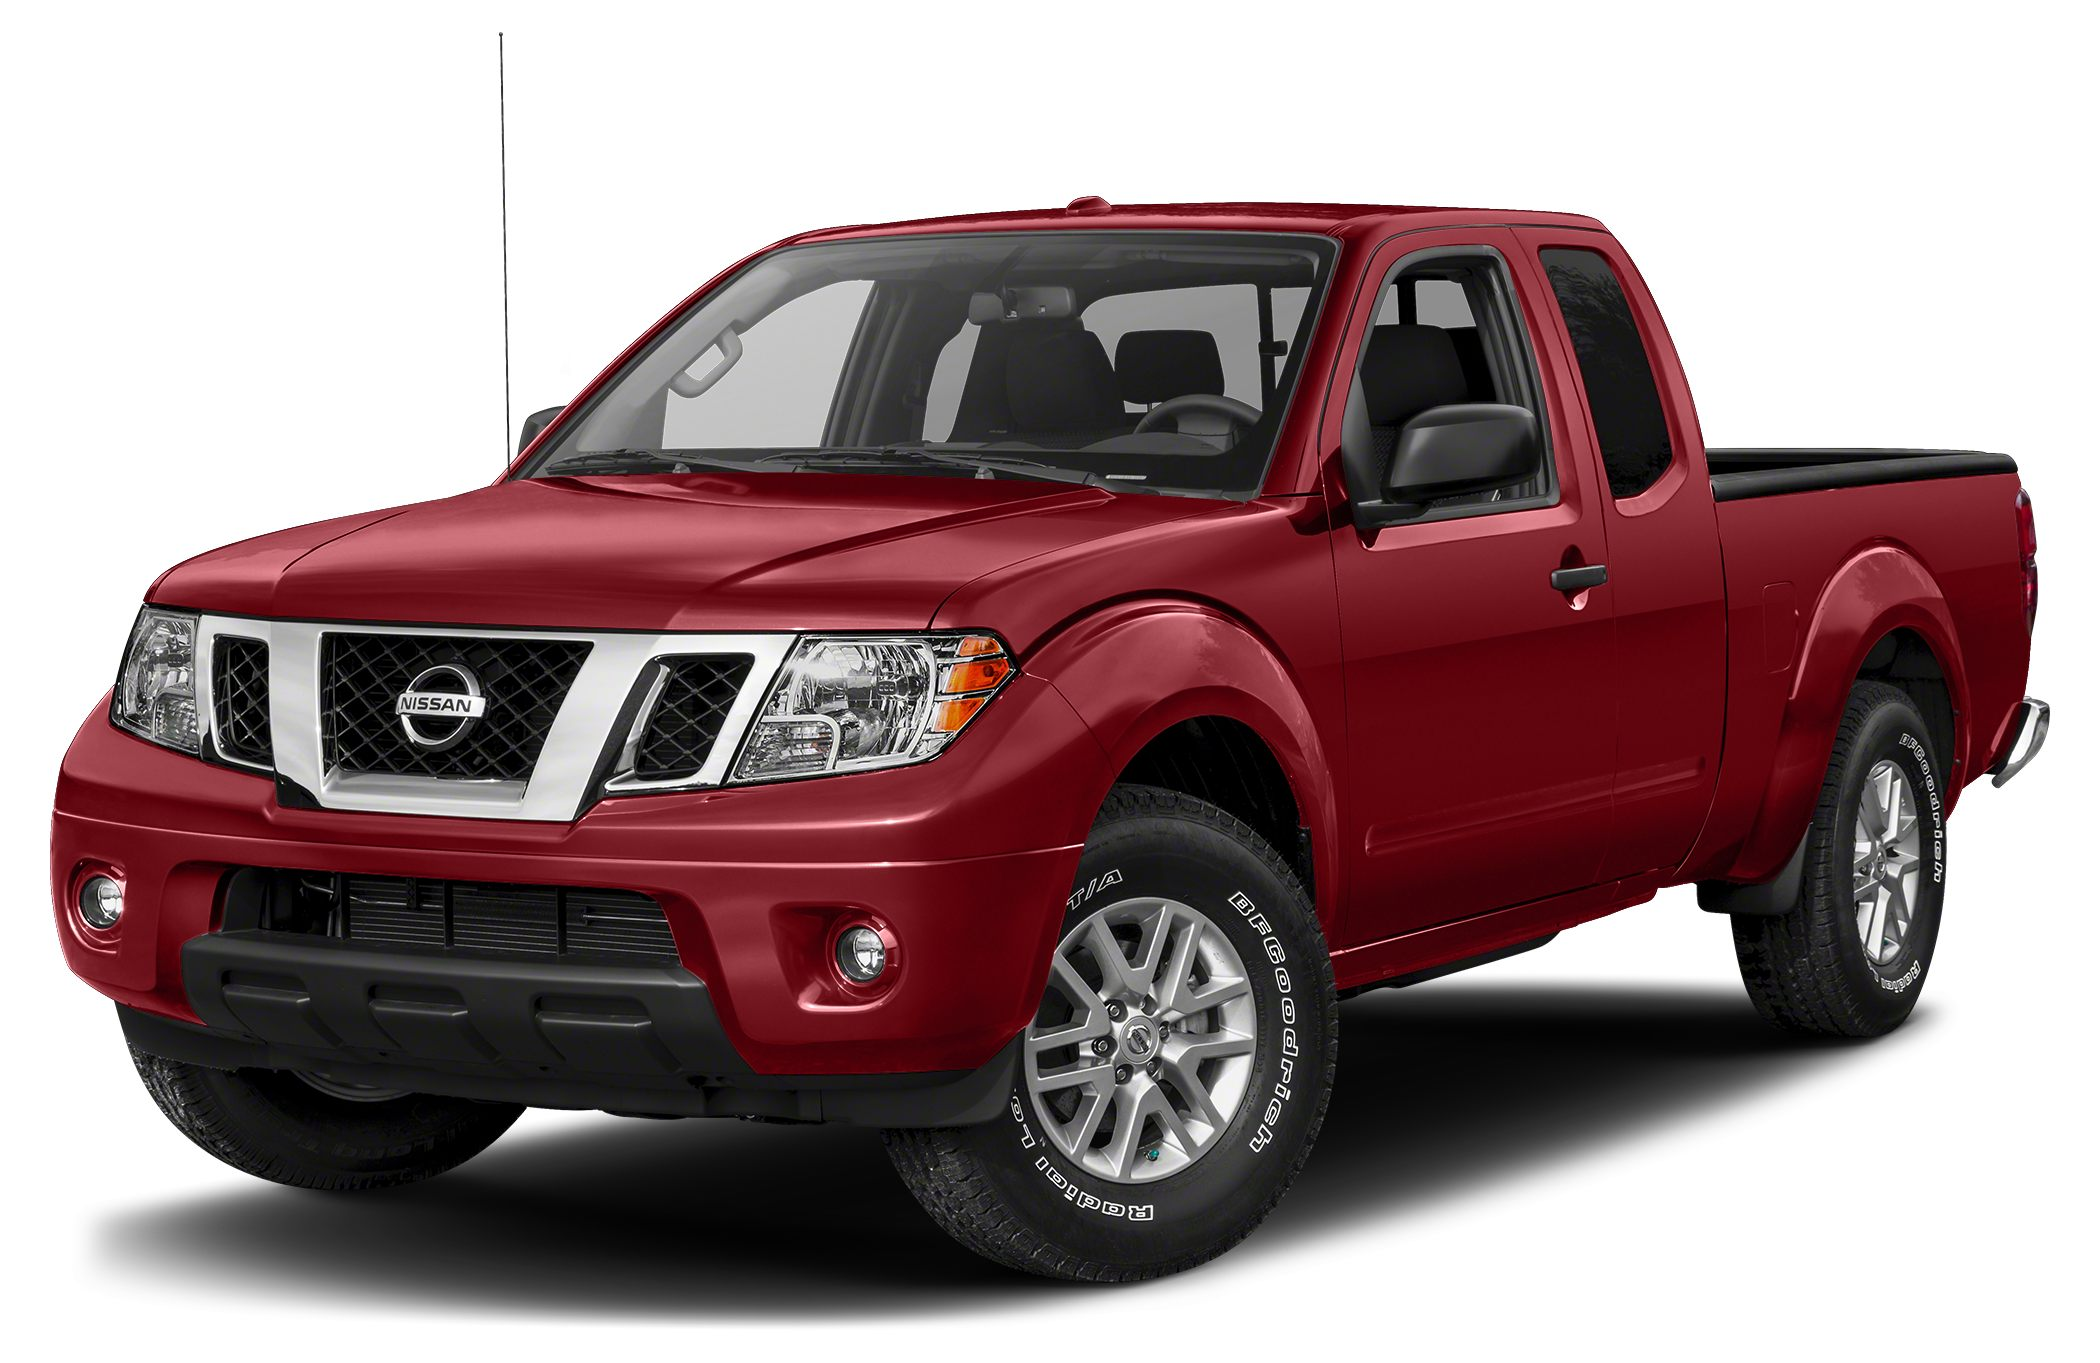 2015 Nissan Frontier SV The Nissan Frontier might be a midsize truck but it does not skimp on atti